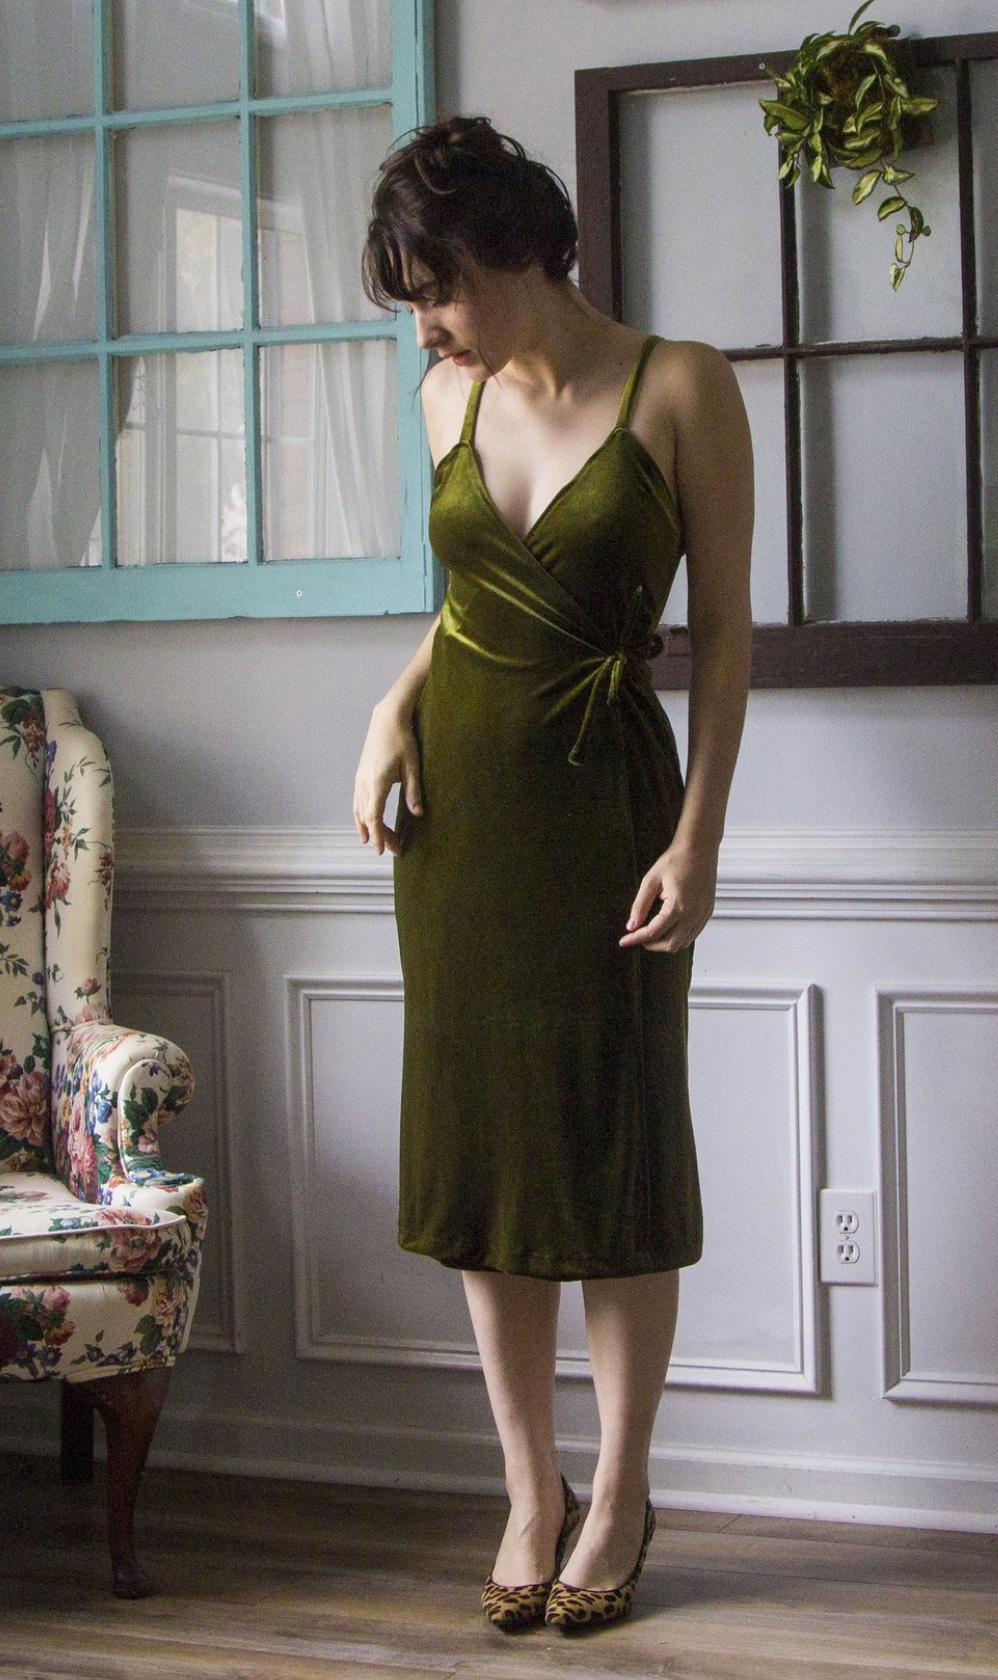 Louise Wrap Dress from Untitled Thoughts